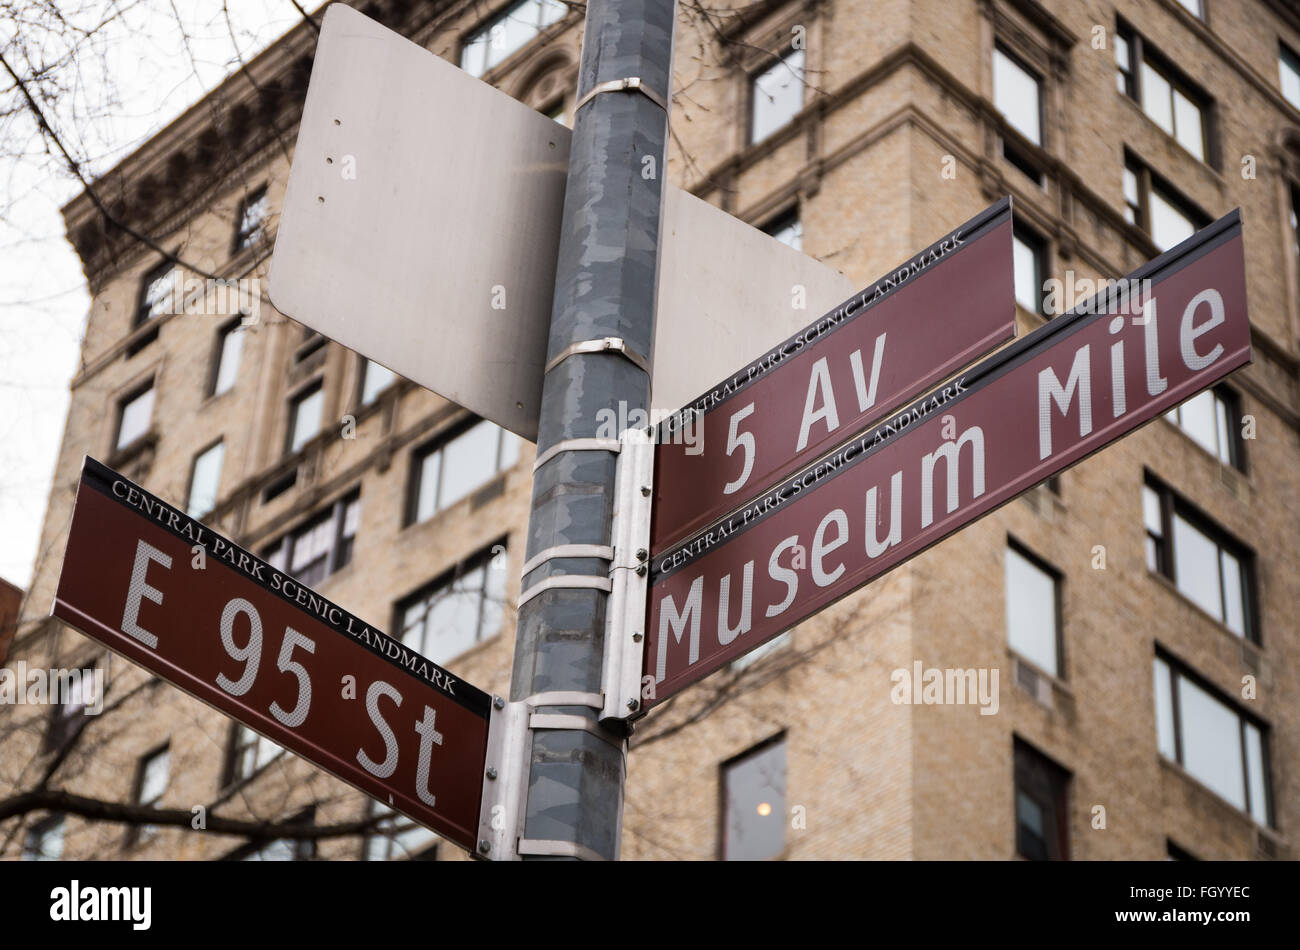 Street signpost in New York, with 5th Avenue, Museum Mile and East 95th Street on it. - Stock Image